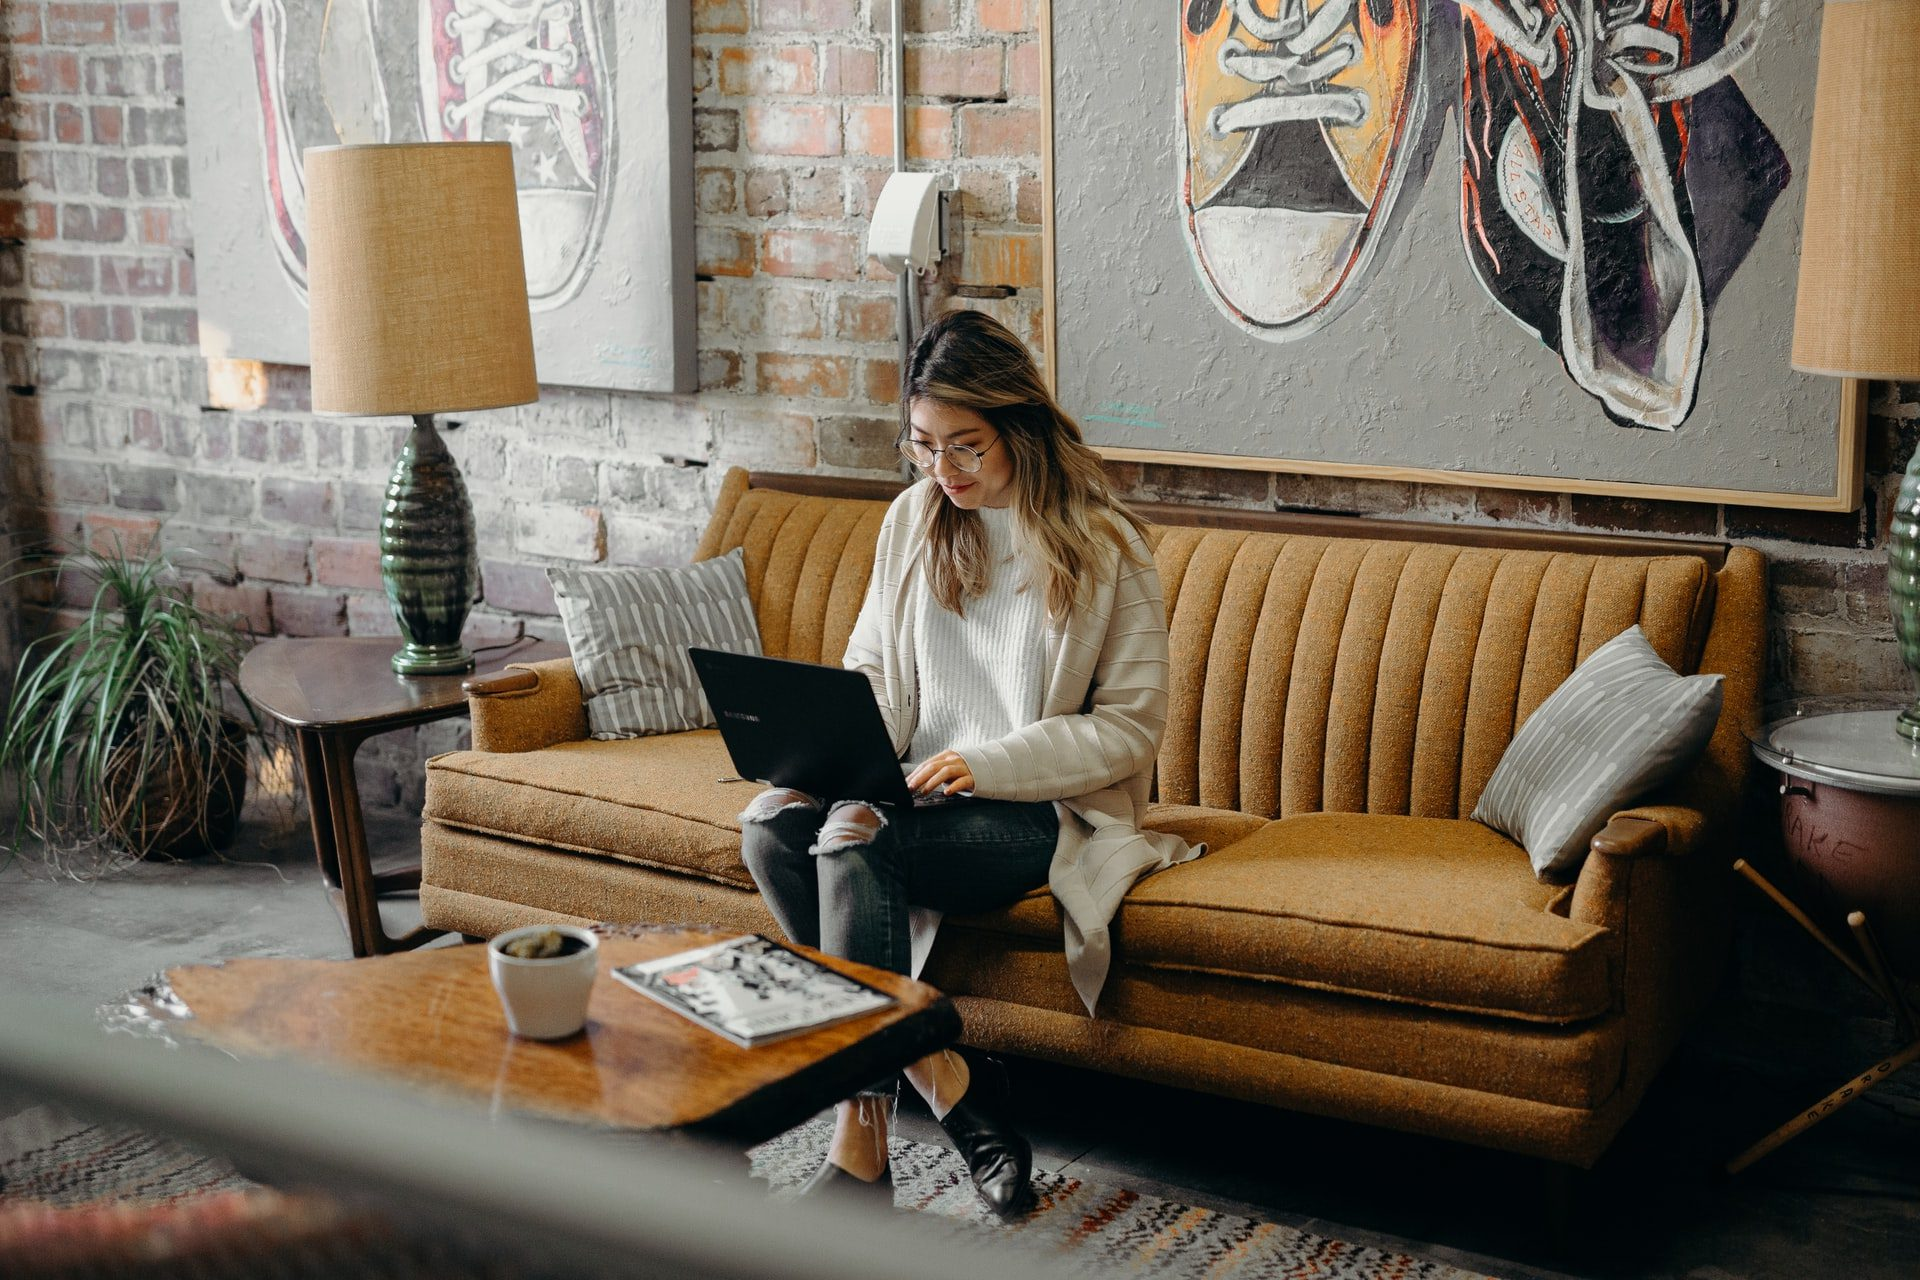 5 Side Hustles for Busy Women Looking to Make Extra Cash